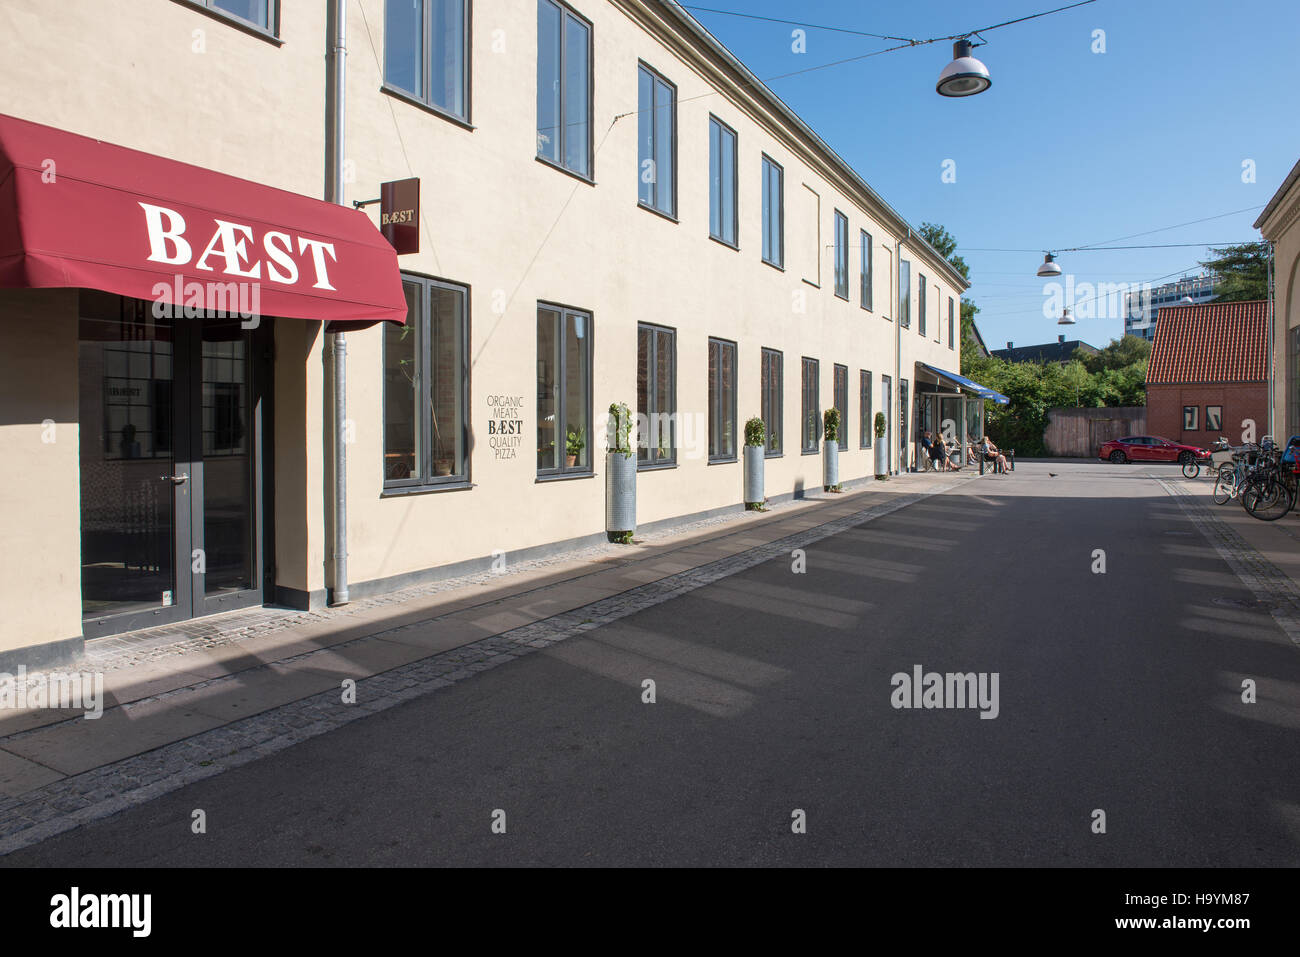 Restaurant Bæst in Copenhagen, Denmark as seen from the street outside in summer - Stock Image